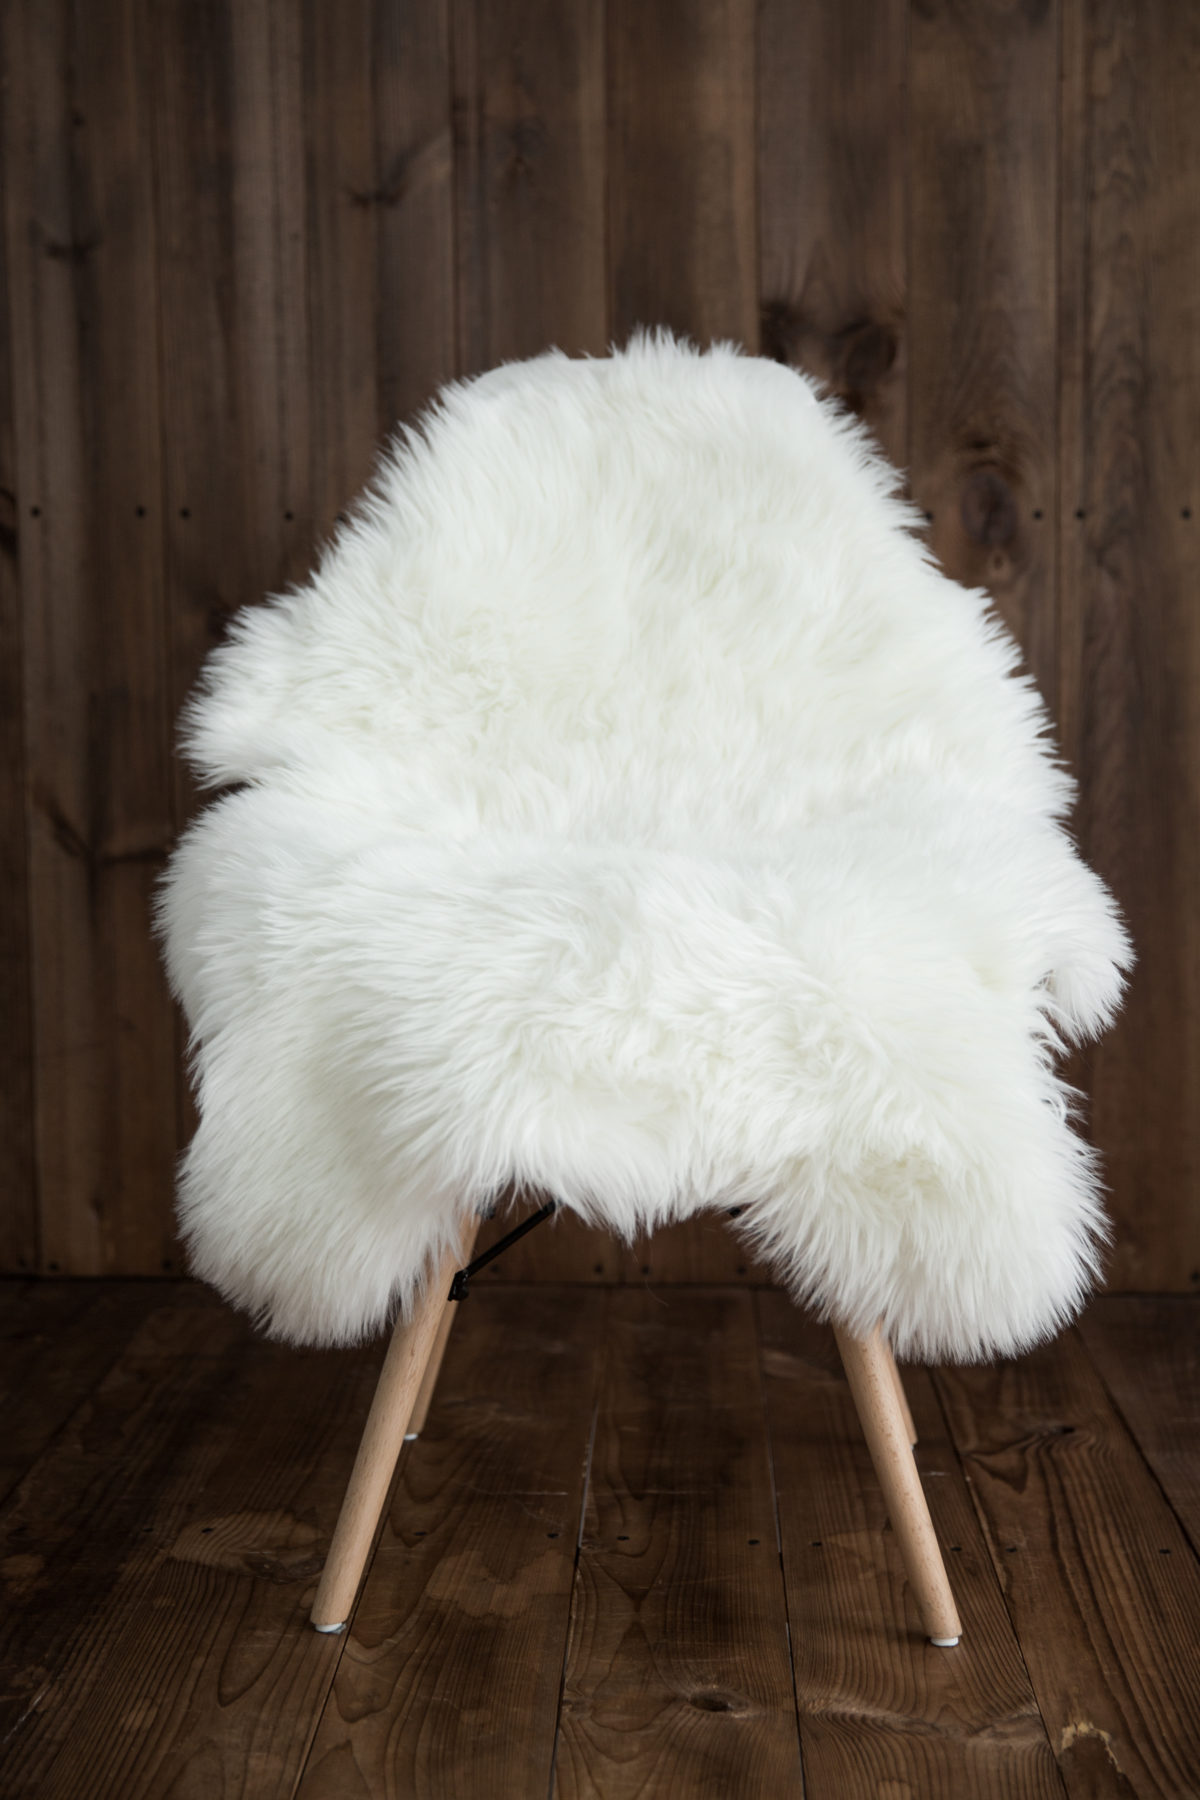 Sheepskin Chair Covers Sheepskin Faux Fur Chair Cover Rug Seat Pad Area Rugs For Bedroom Sofa Floor Vanity Nursery Decor White